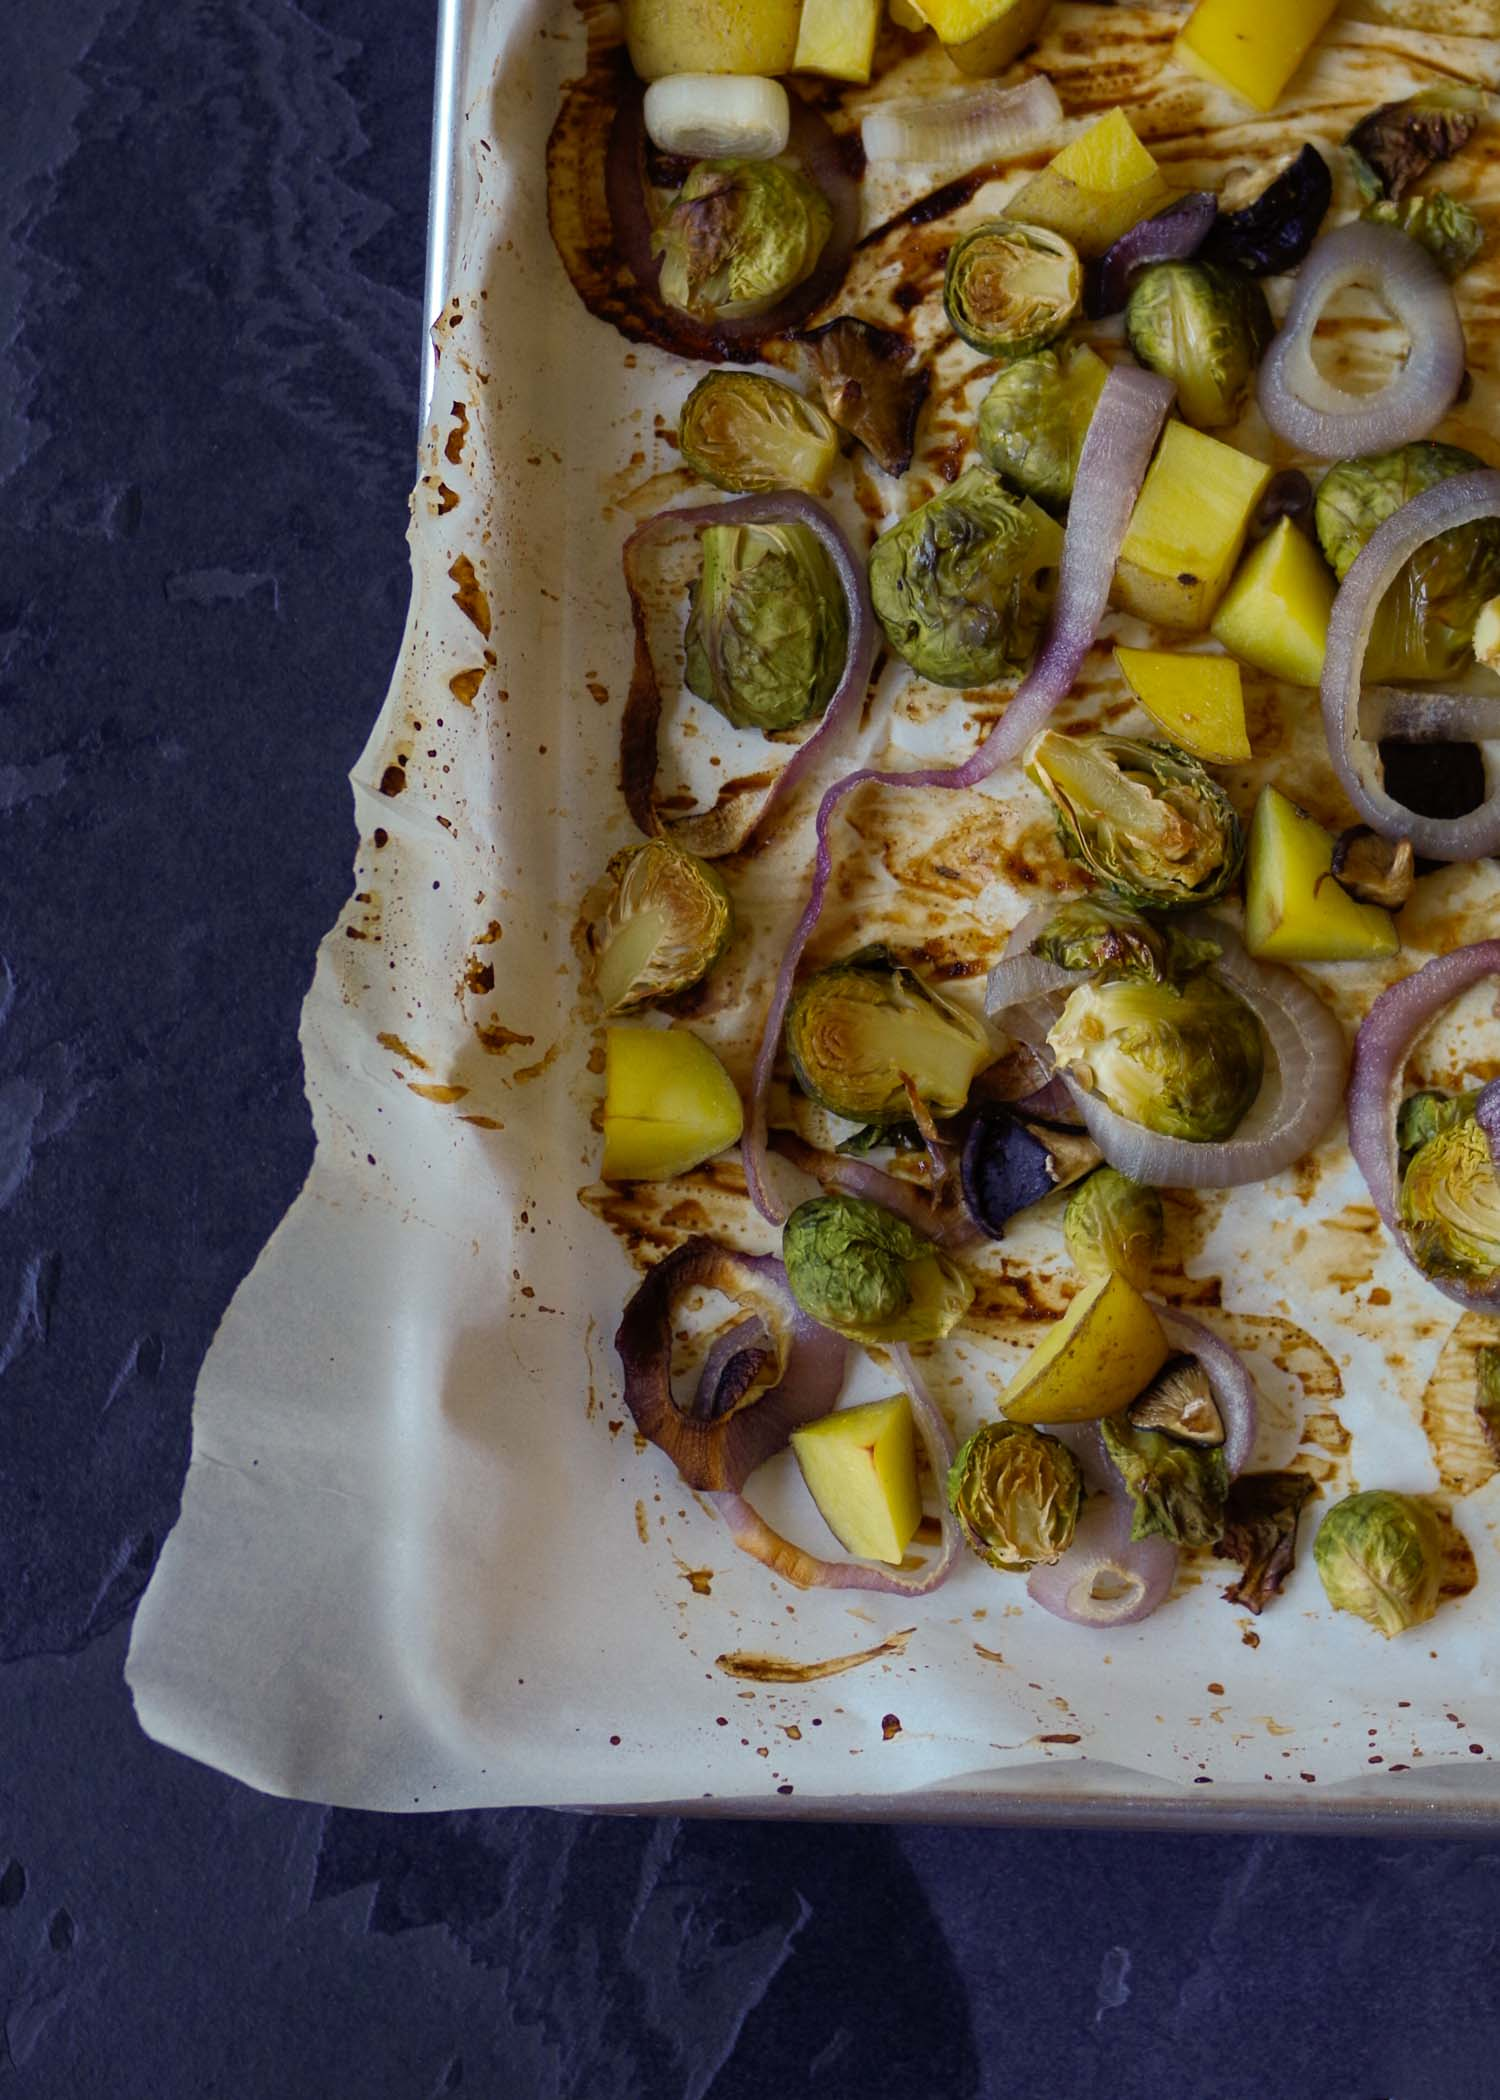 Roasted vegetables brown up even without oil.